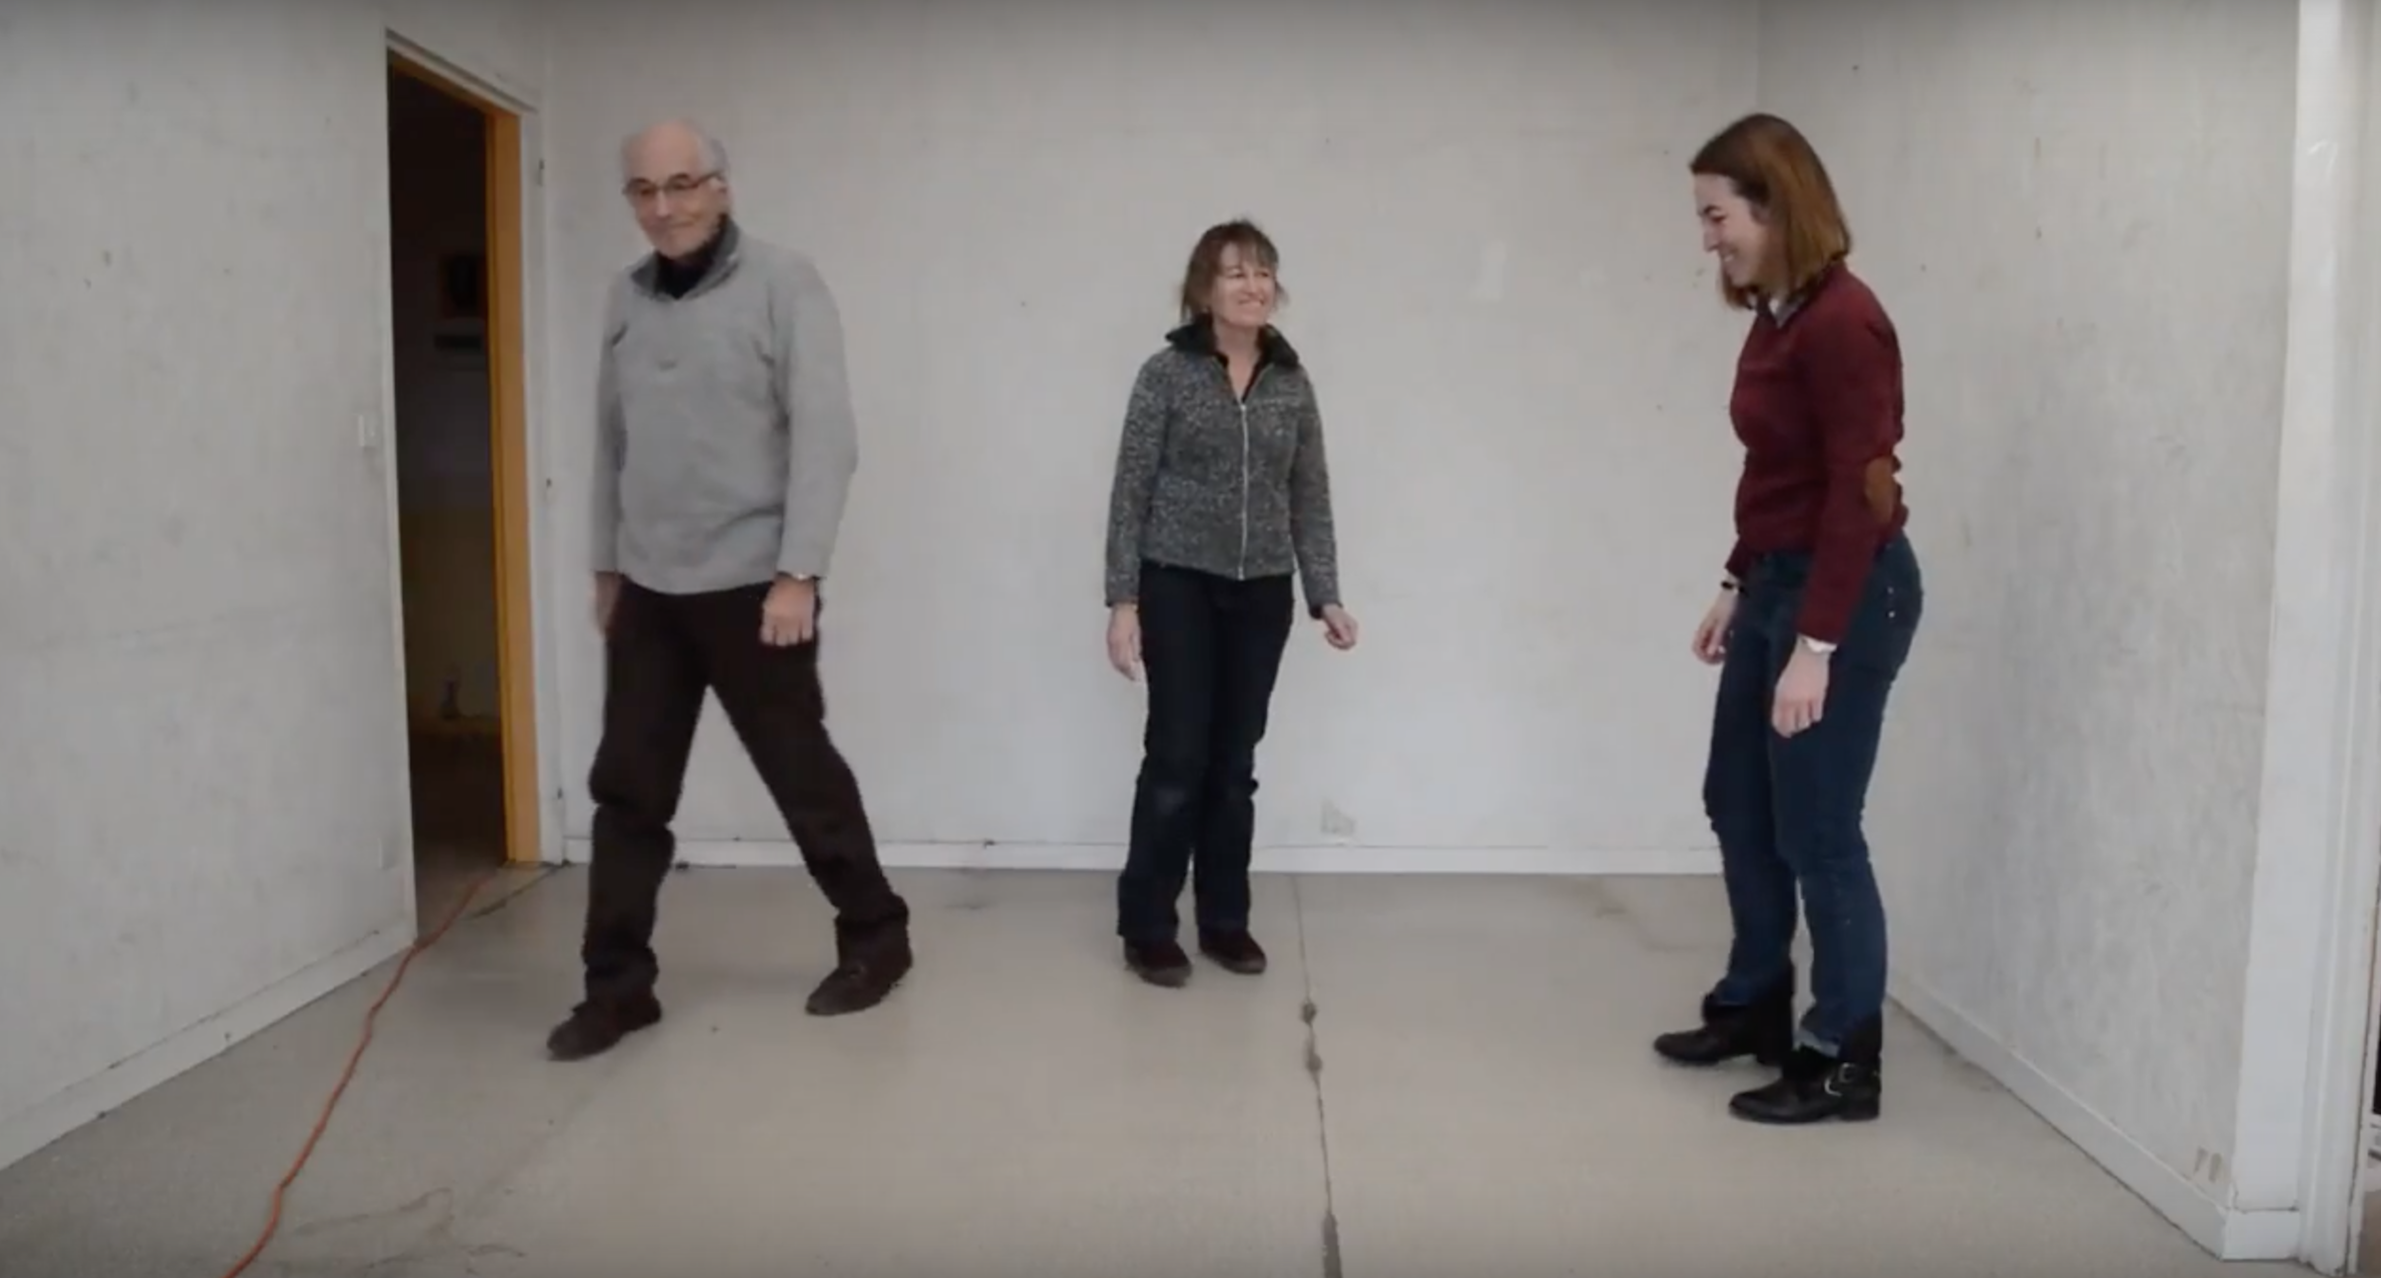 """Memories of Darme's family"" – Aix les Bains -France- (Performative video)"